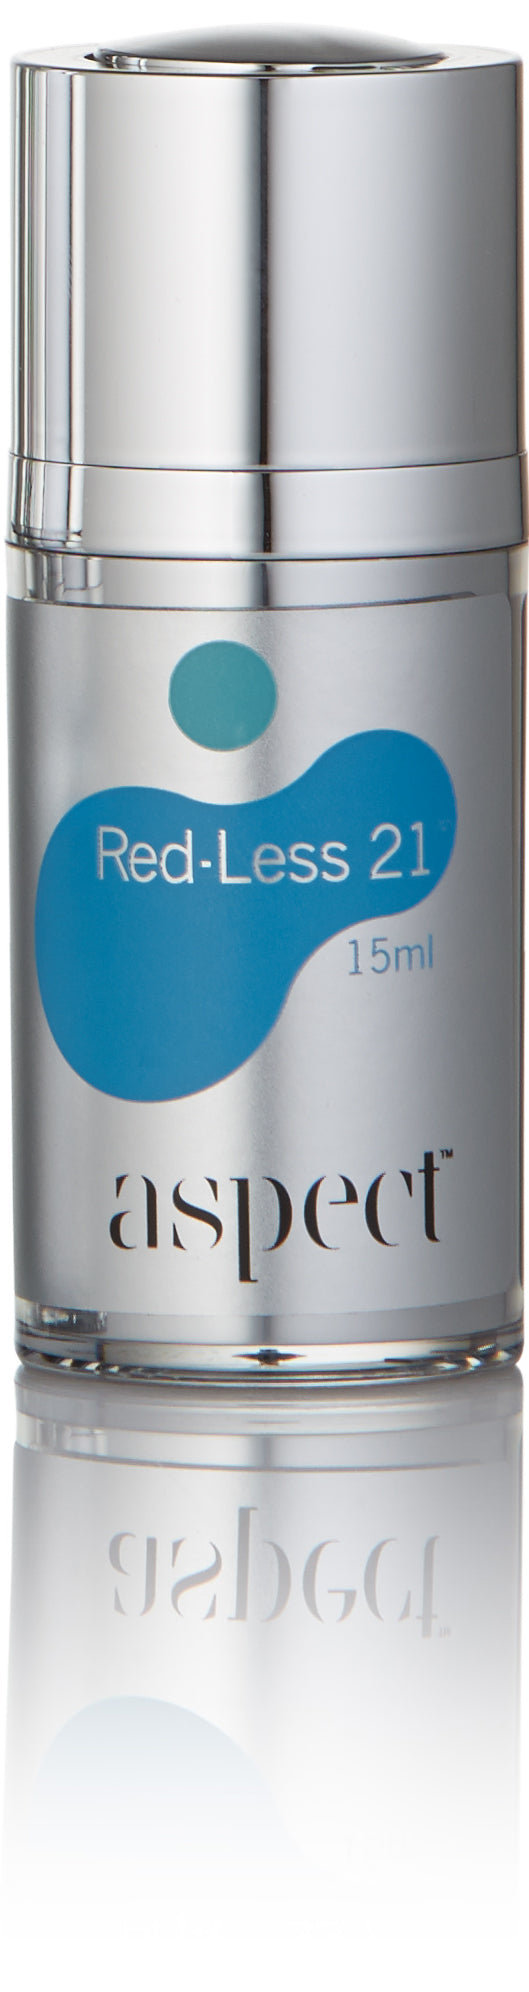 Red-Less 21 15ml